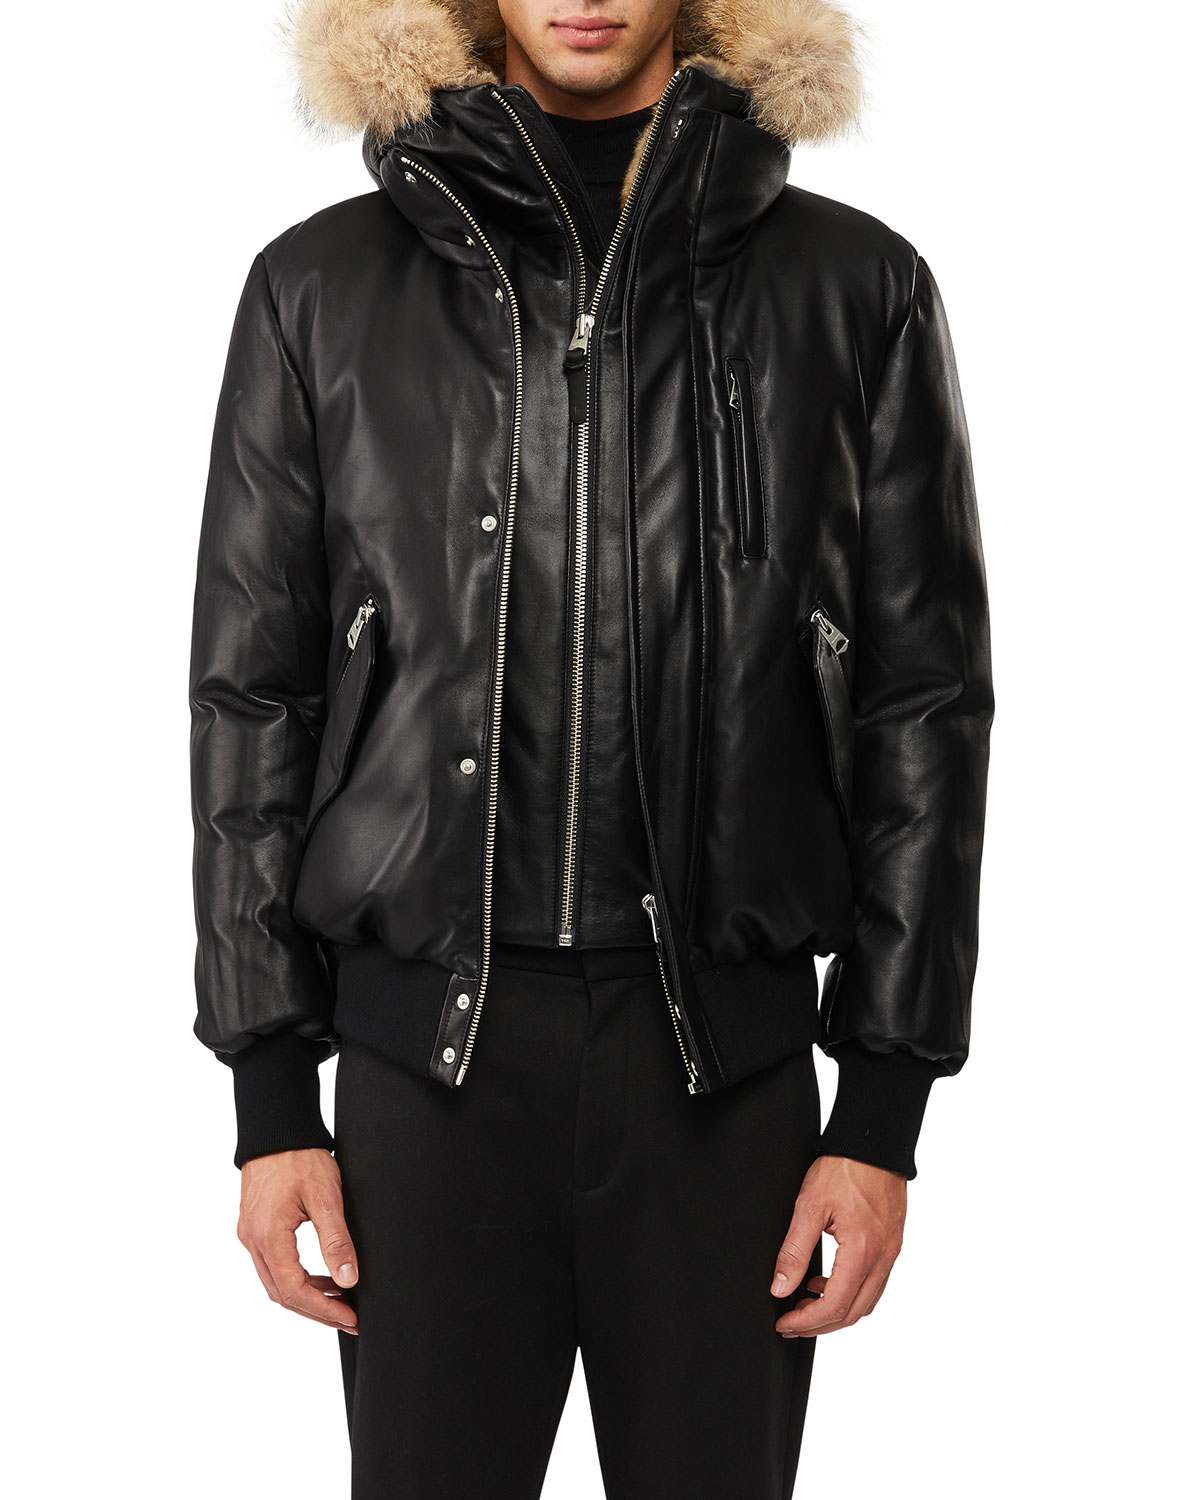 118f0375b Glen Leather Down Bomber Jacket with Fur Trim